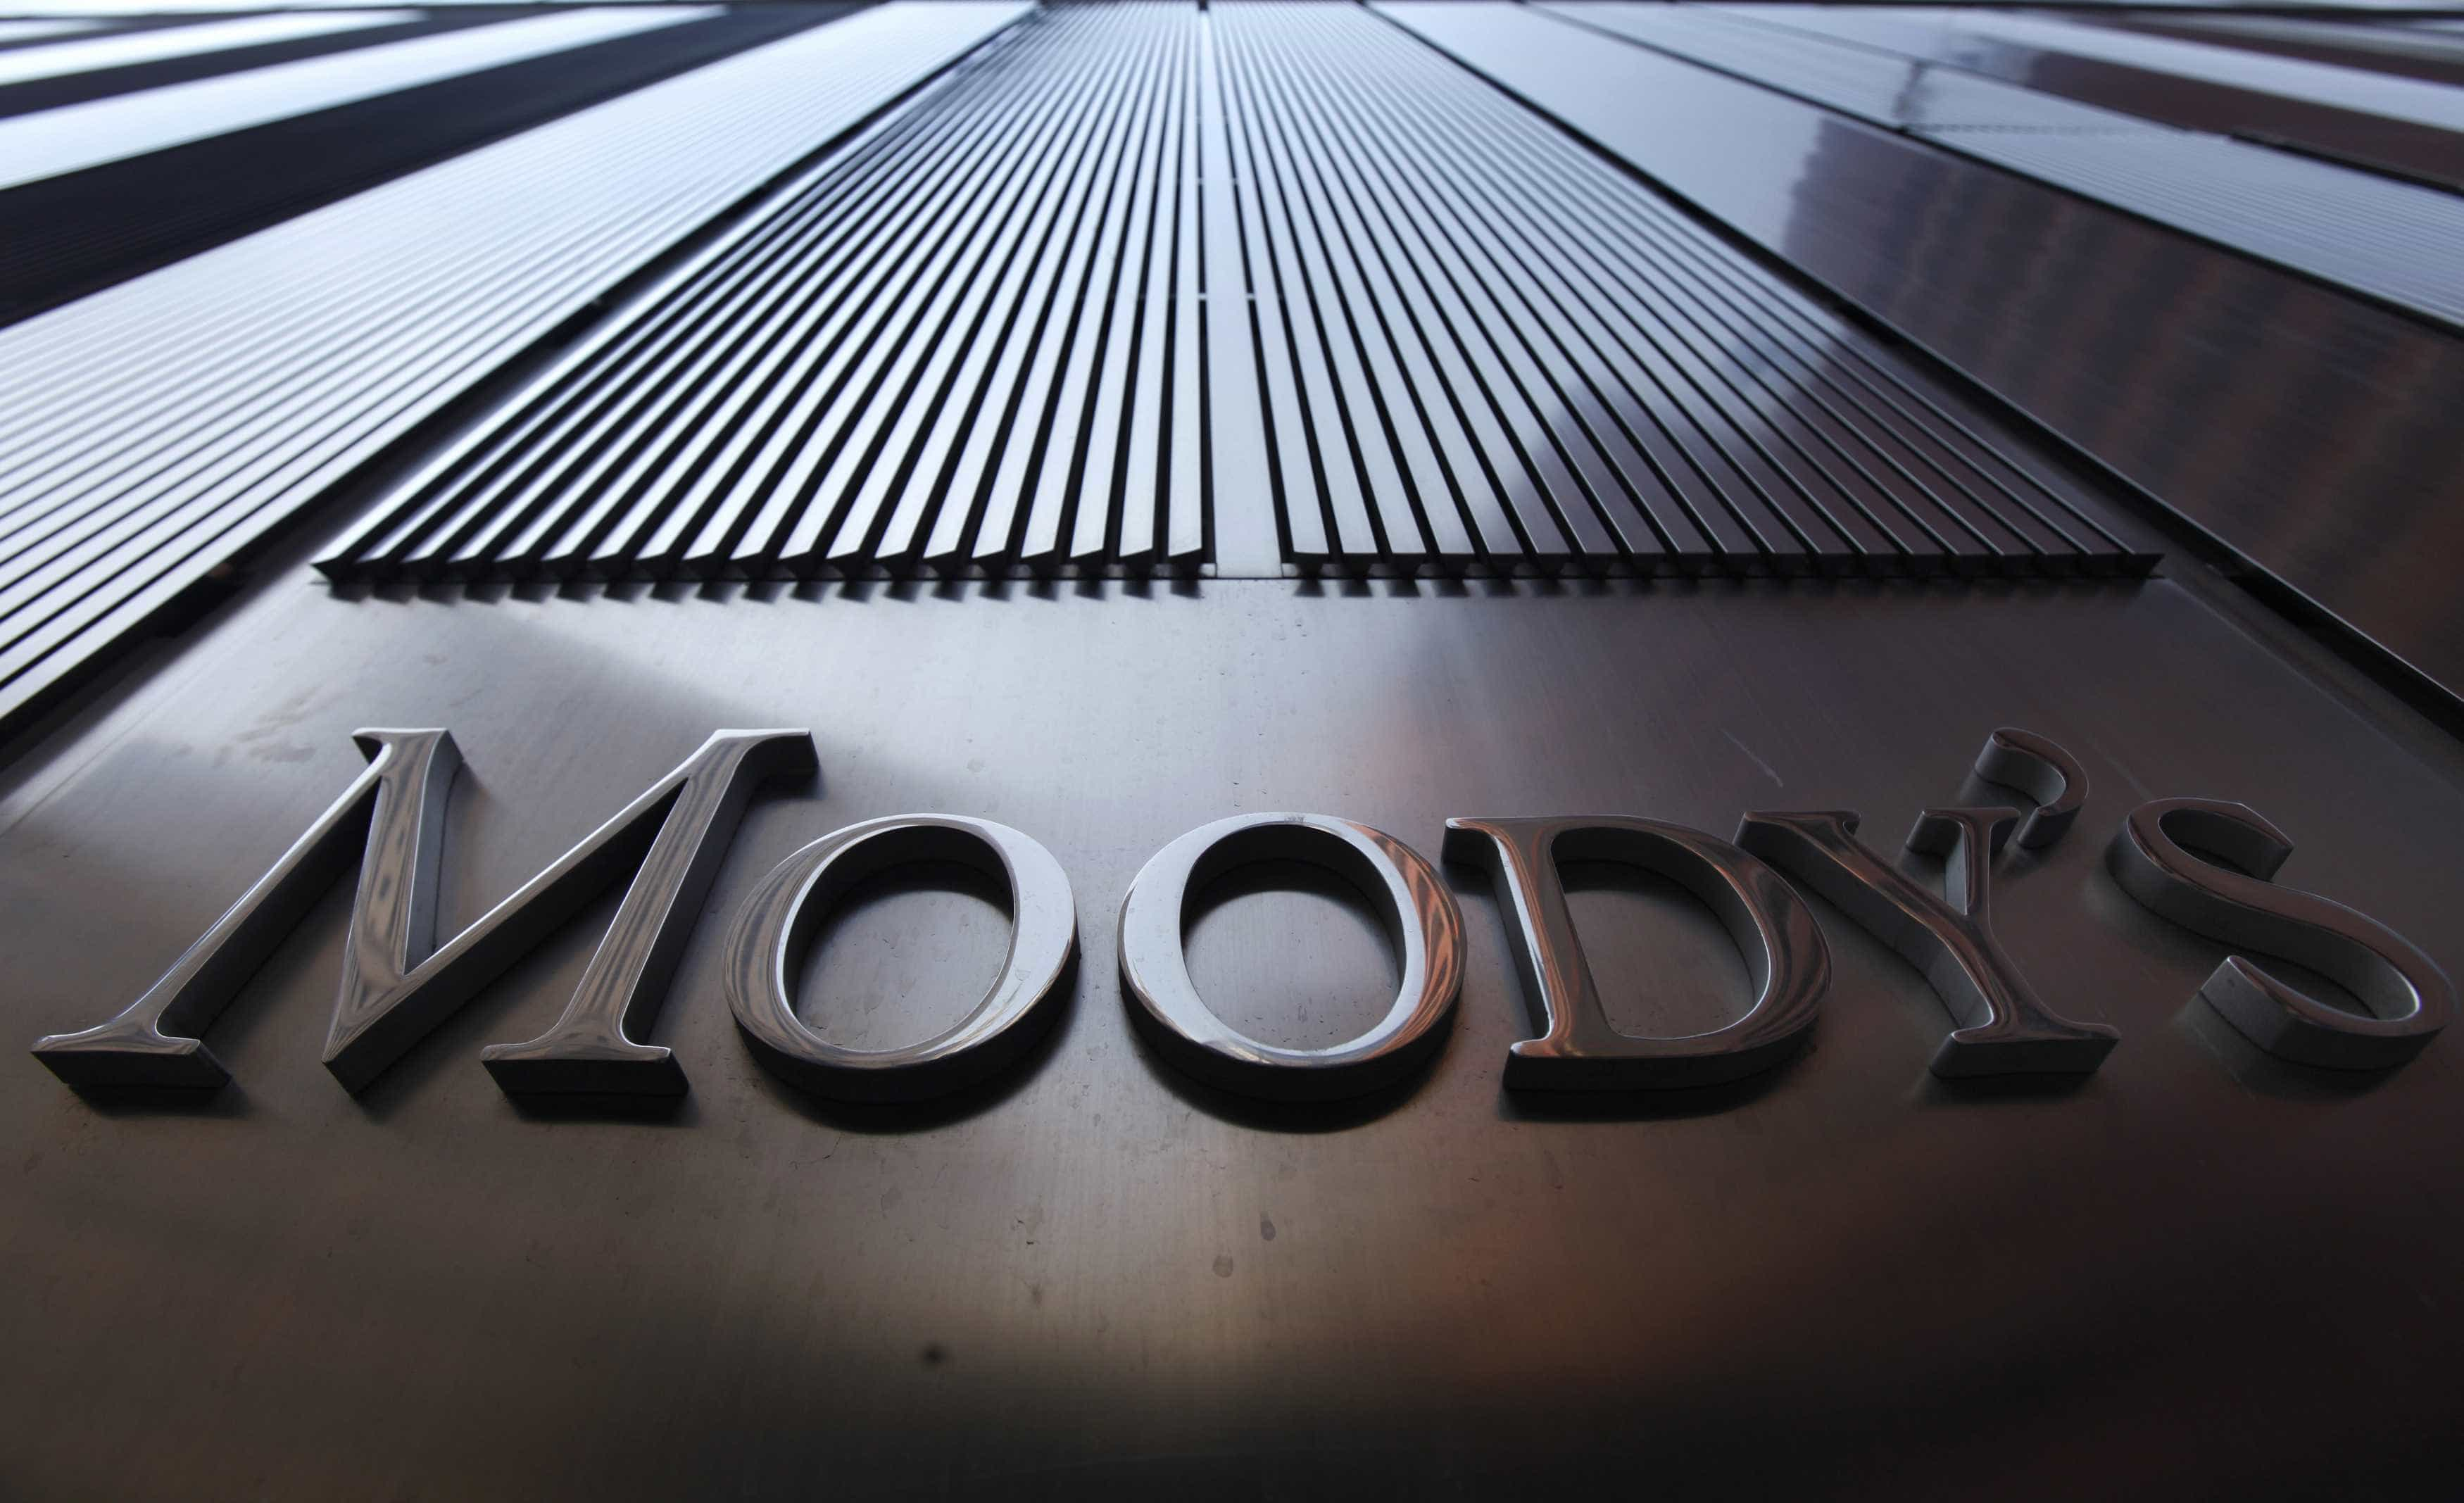 Moody's mantém 'rating' de Portugal com perspetiva estável